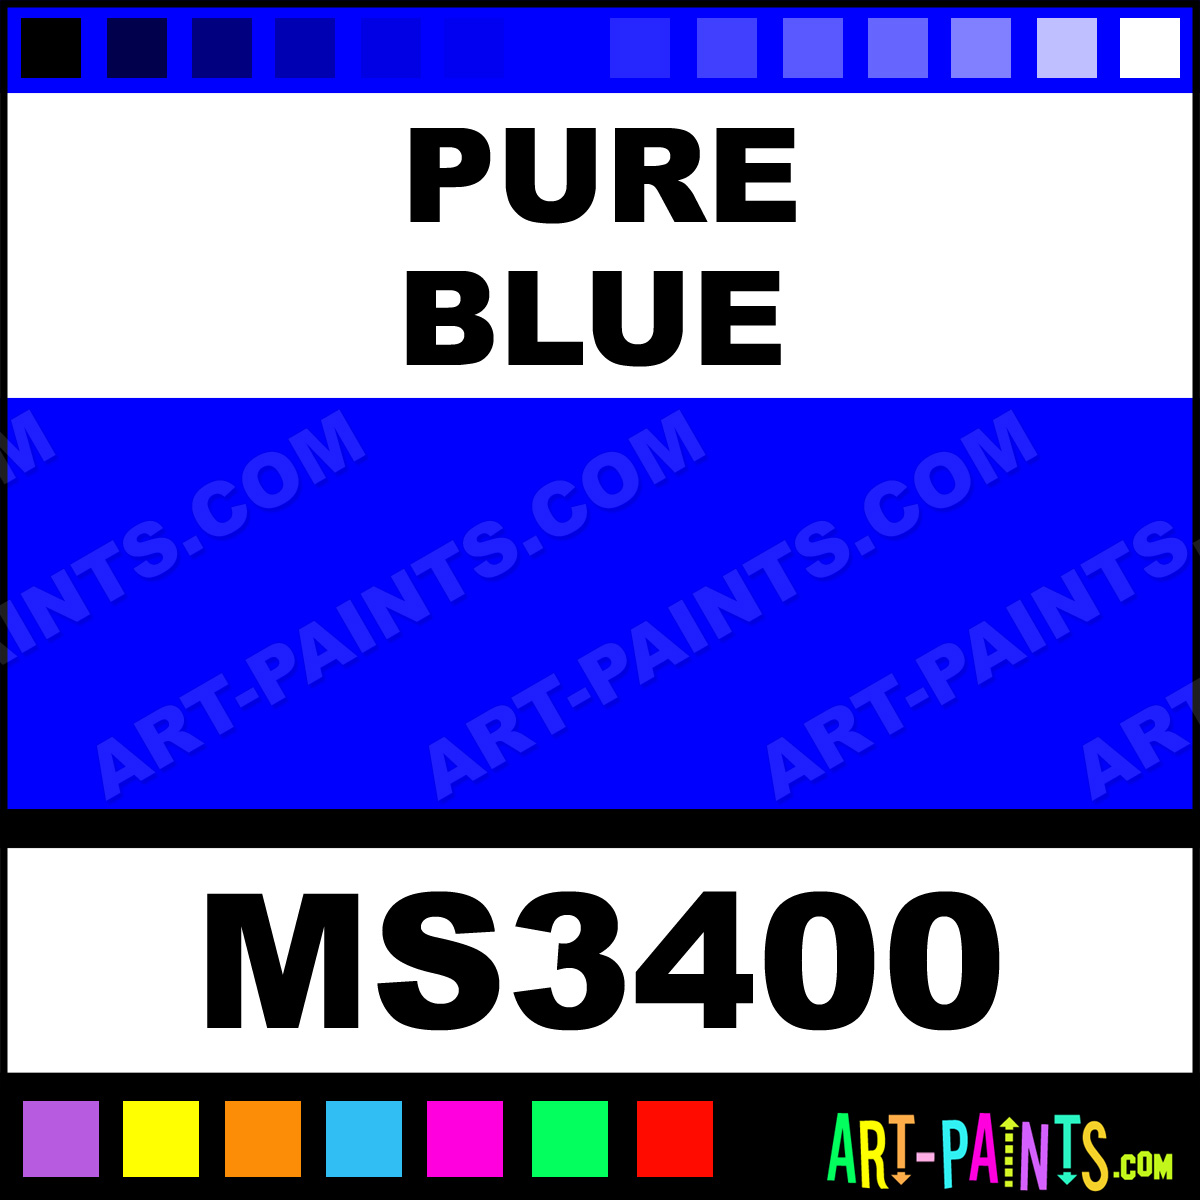 Pure blue color